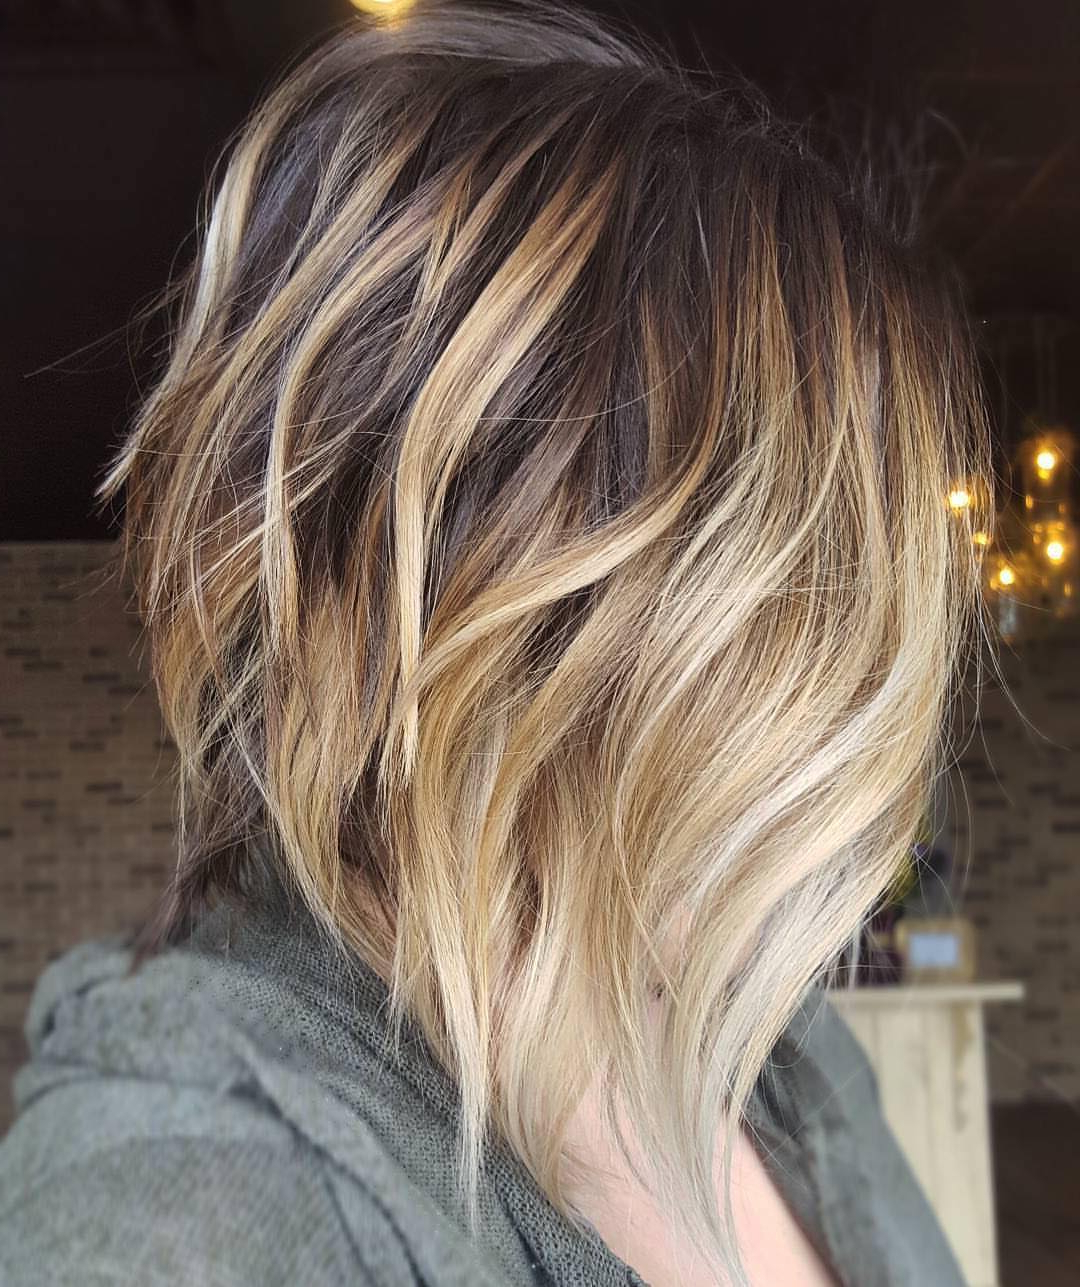 10 Cute Medium Hairstyles With Gorgeous Color Twists – Medium With Regard To Short Stacked Bob Hairstyles With Subtle Balayage (View 1 of 20)